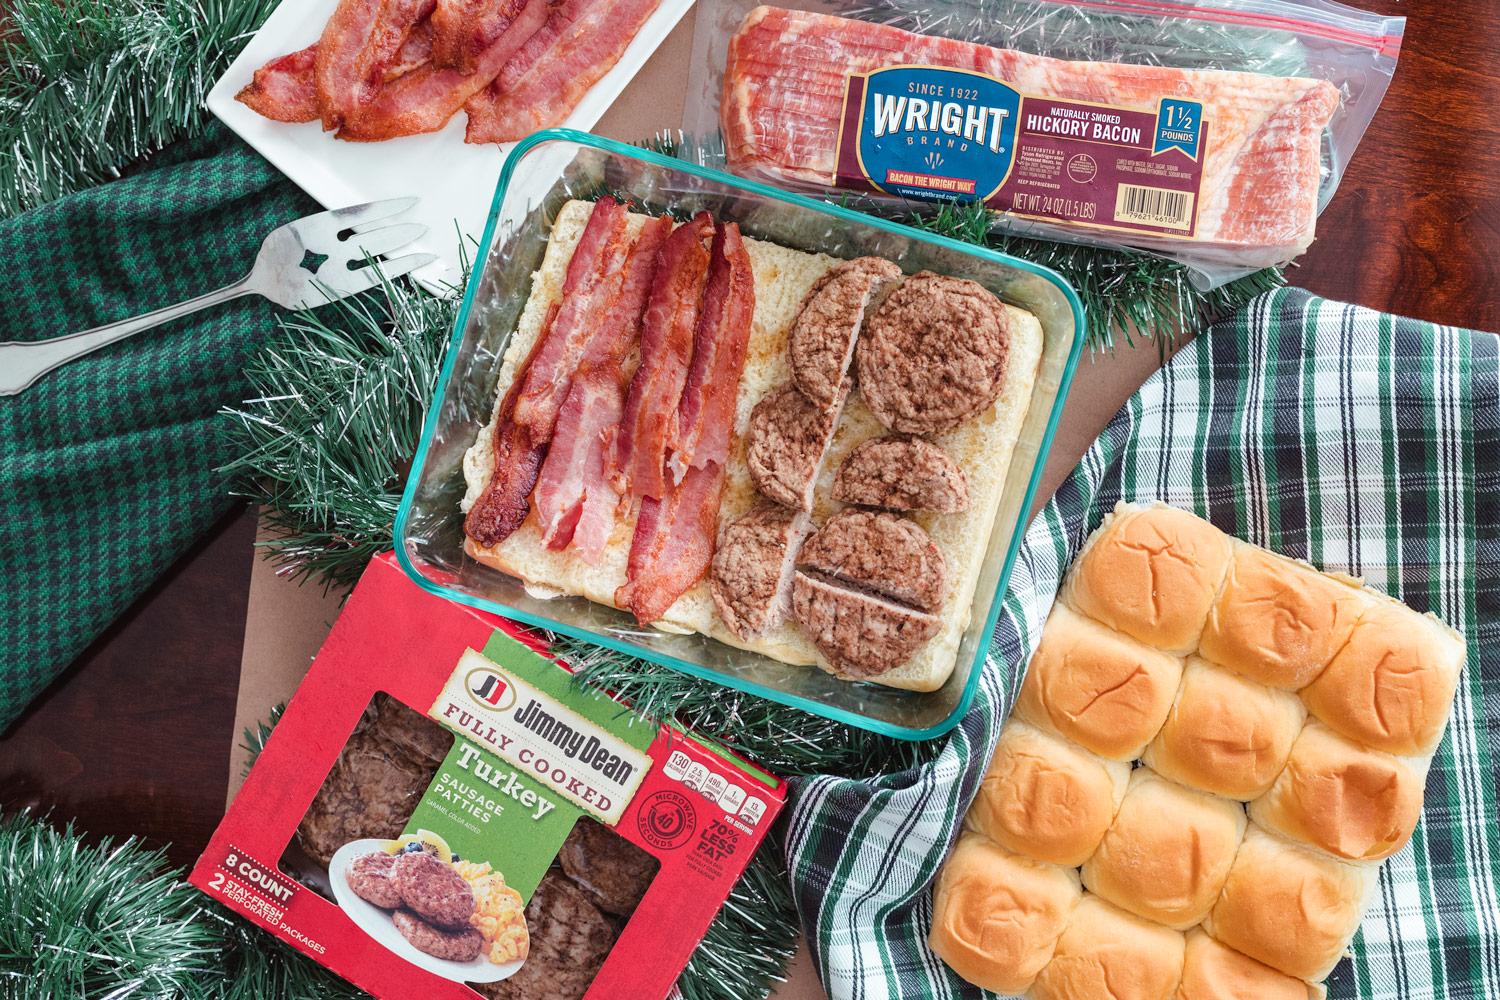 Bacon & Sausage Breakfast sliders for Christmas morning. These Holiday Breakfast Sliders are cheesy, eggy, maple syrup and meaty goodness with Wright® Brand Bacon and Jimmy Dean® Fully Cooked Turkey Sausage Patties. This recipe can be a make ahead breakfast with assembly needed only before baking on Christmas! #sponsored #ElleTalk #BreakfastRecipe #ChristmasRecipe #HolidayRecipe #christmasmorning #ChristmasEntertaining